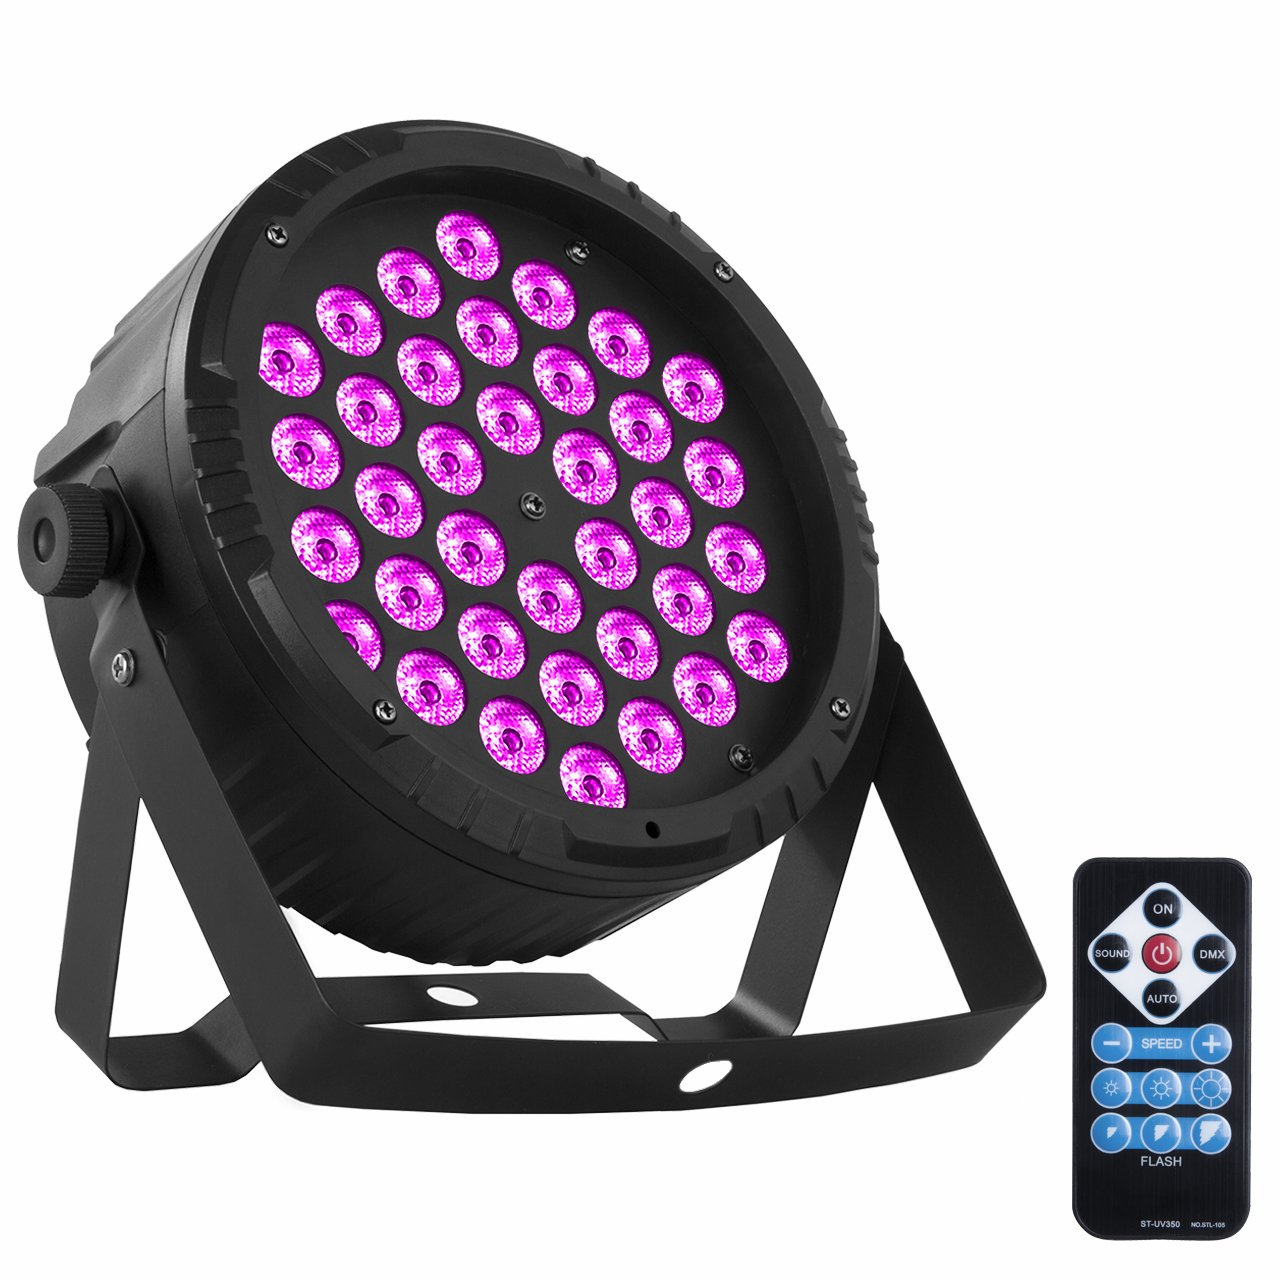 Eyourlife 36 X 1W LED Stage Lights Blacklight UV Light Par Lights Stage Lighting DMX Black Light DJ Lighting for Glow Party Wall Decor Neon Paint Dance Floor Disco Bar Concert